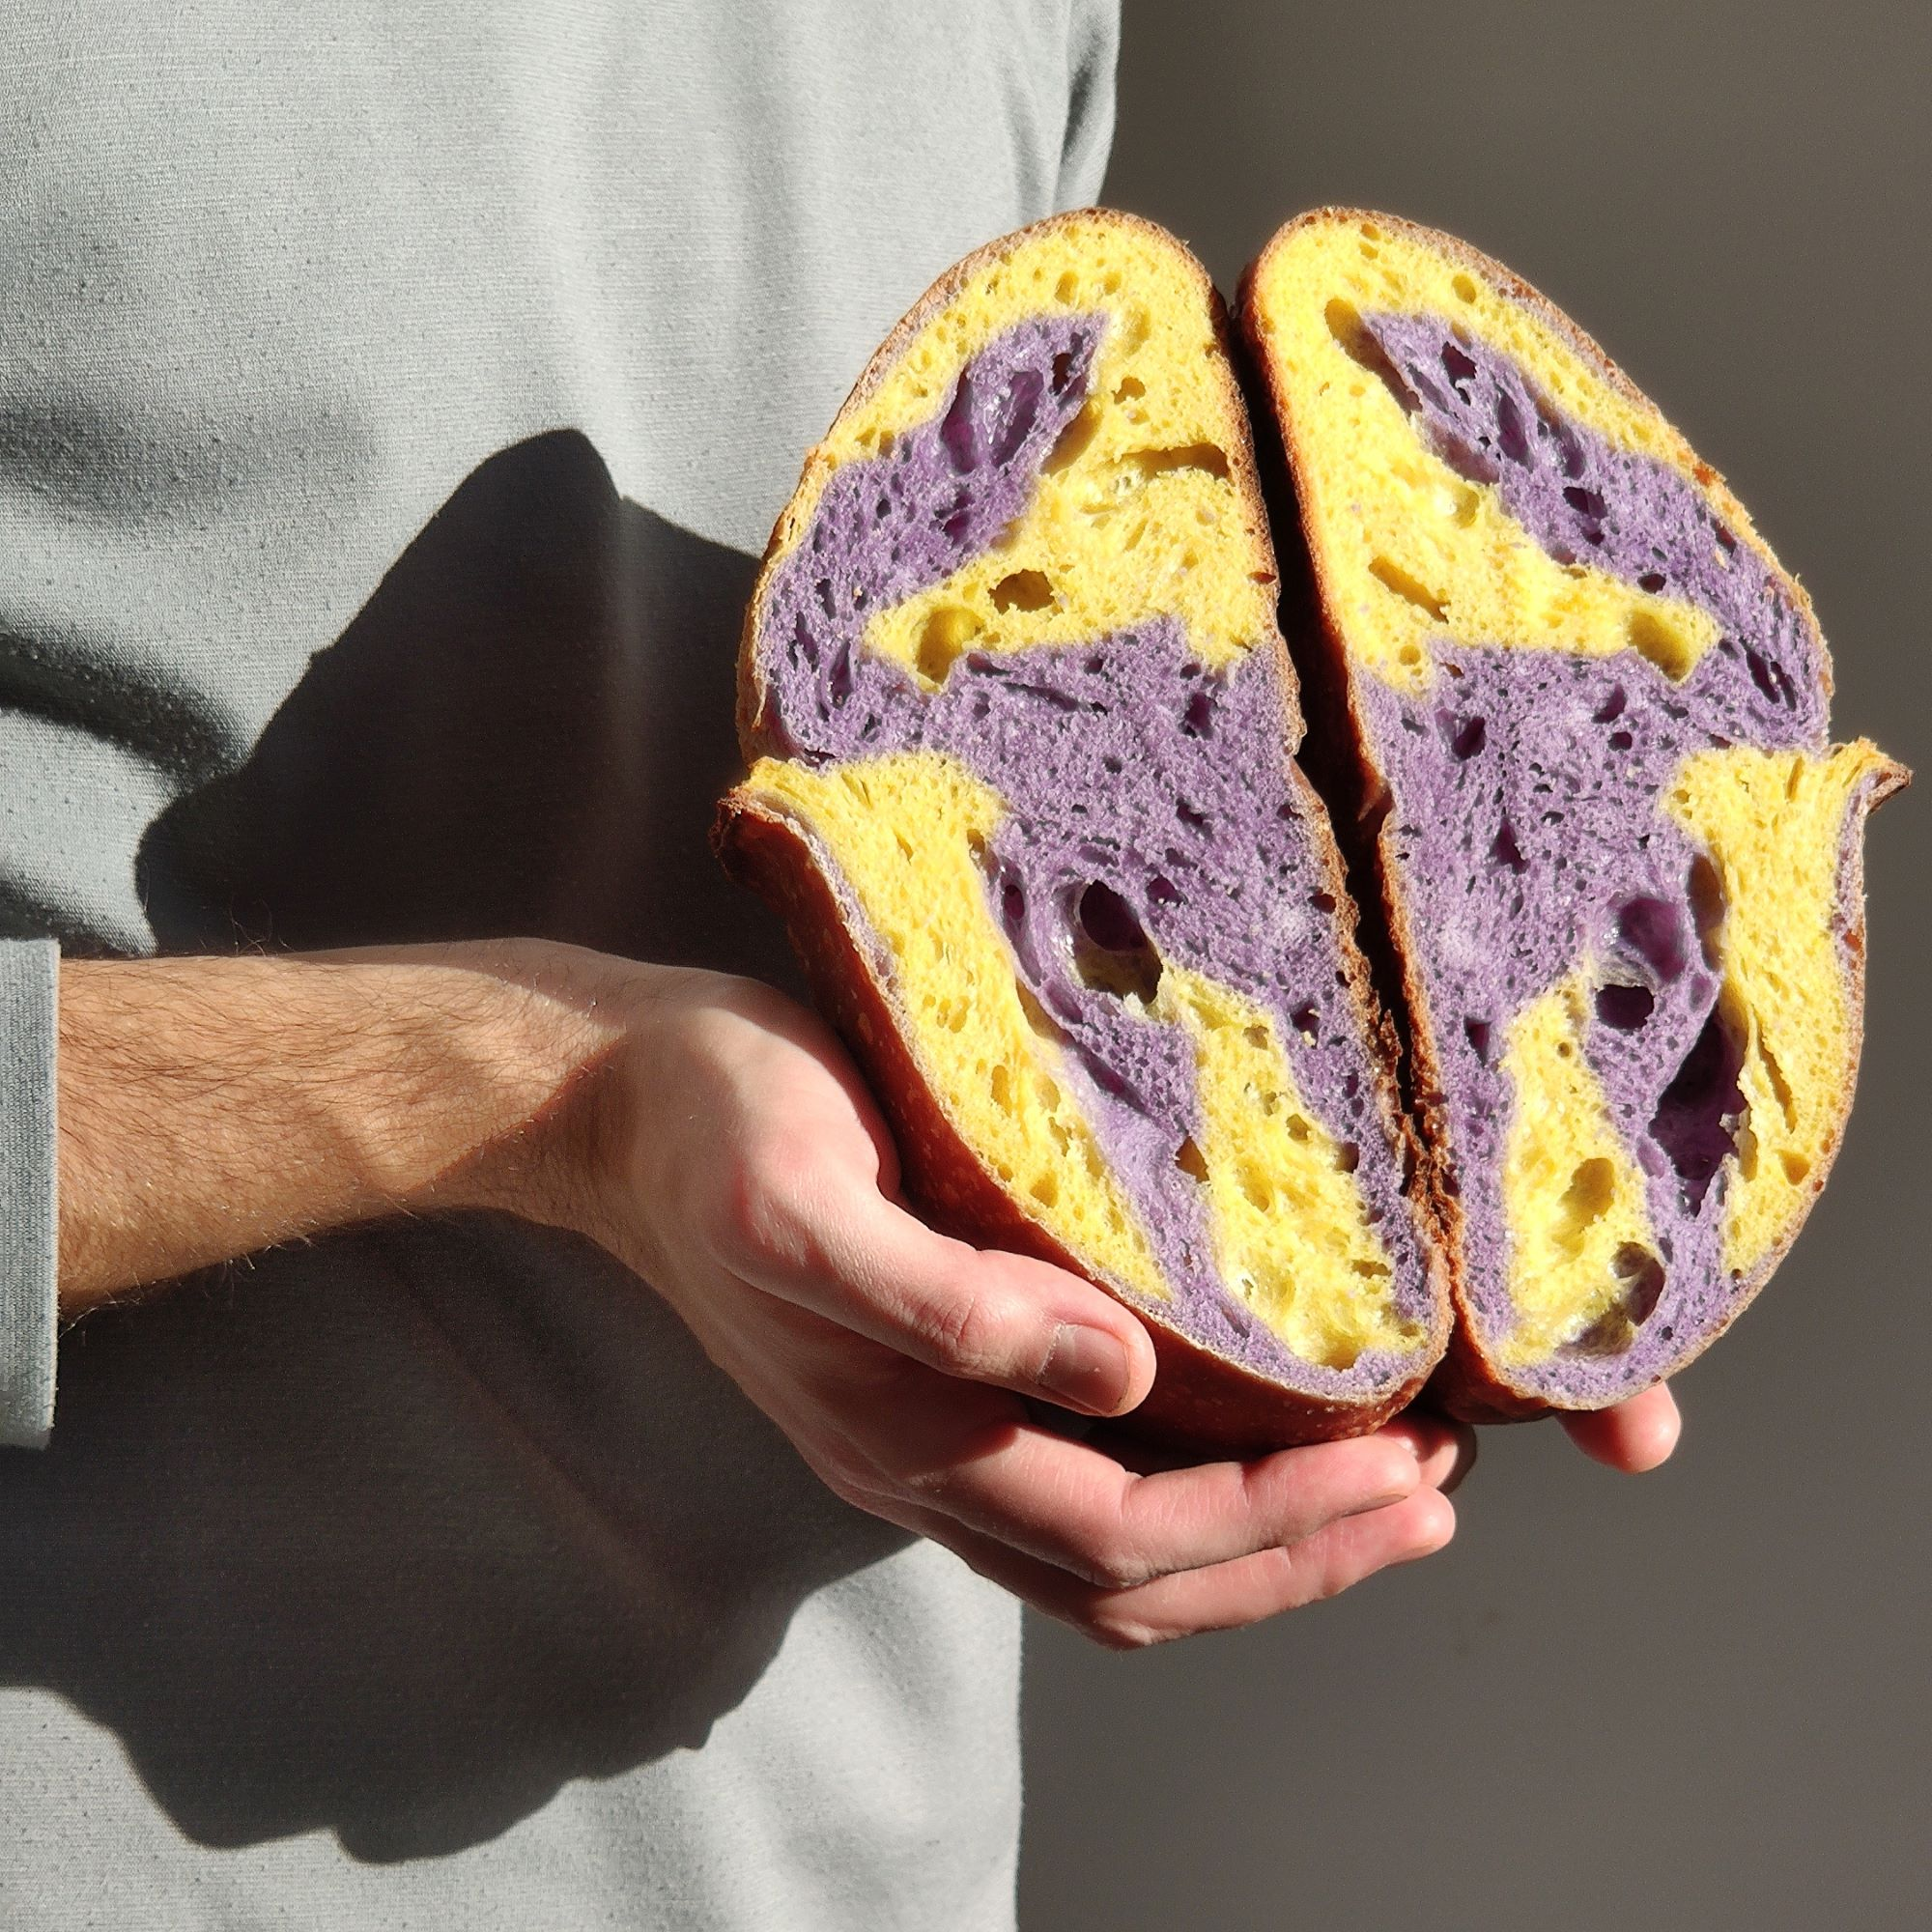 man holding loaf of multicolored purple and yellow sourdough bread